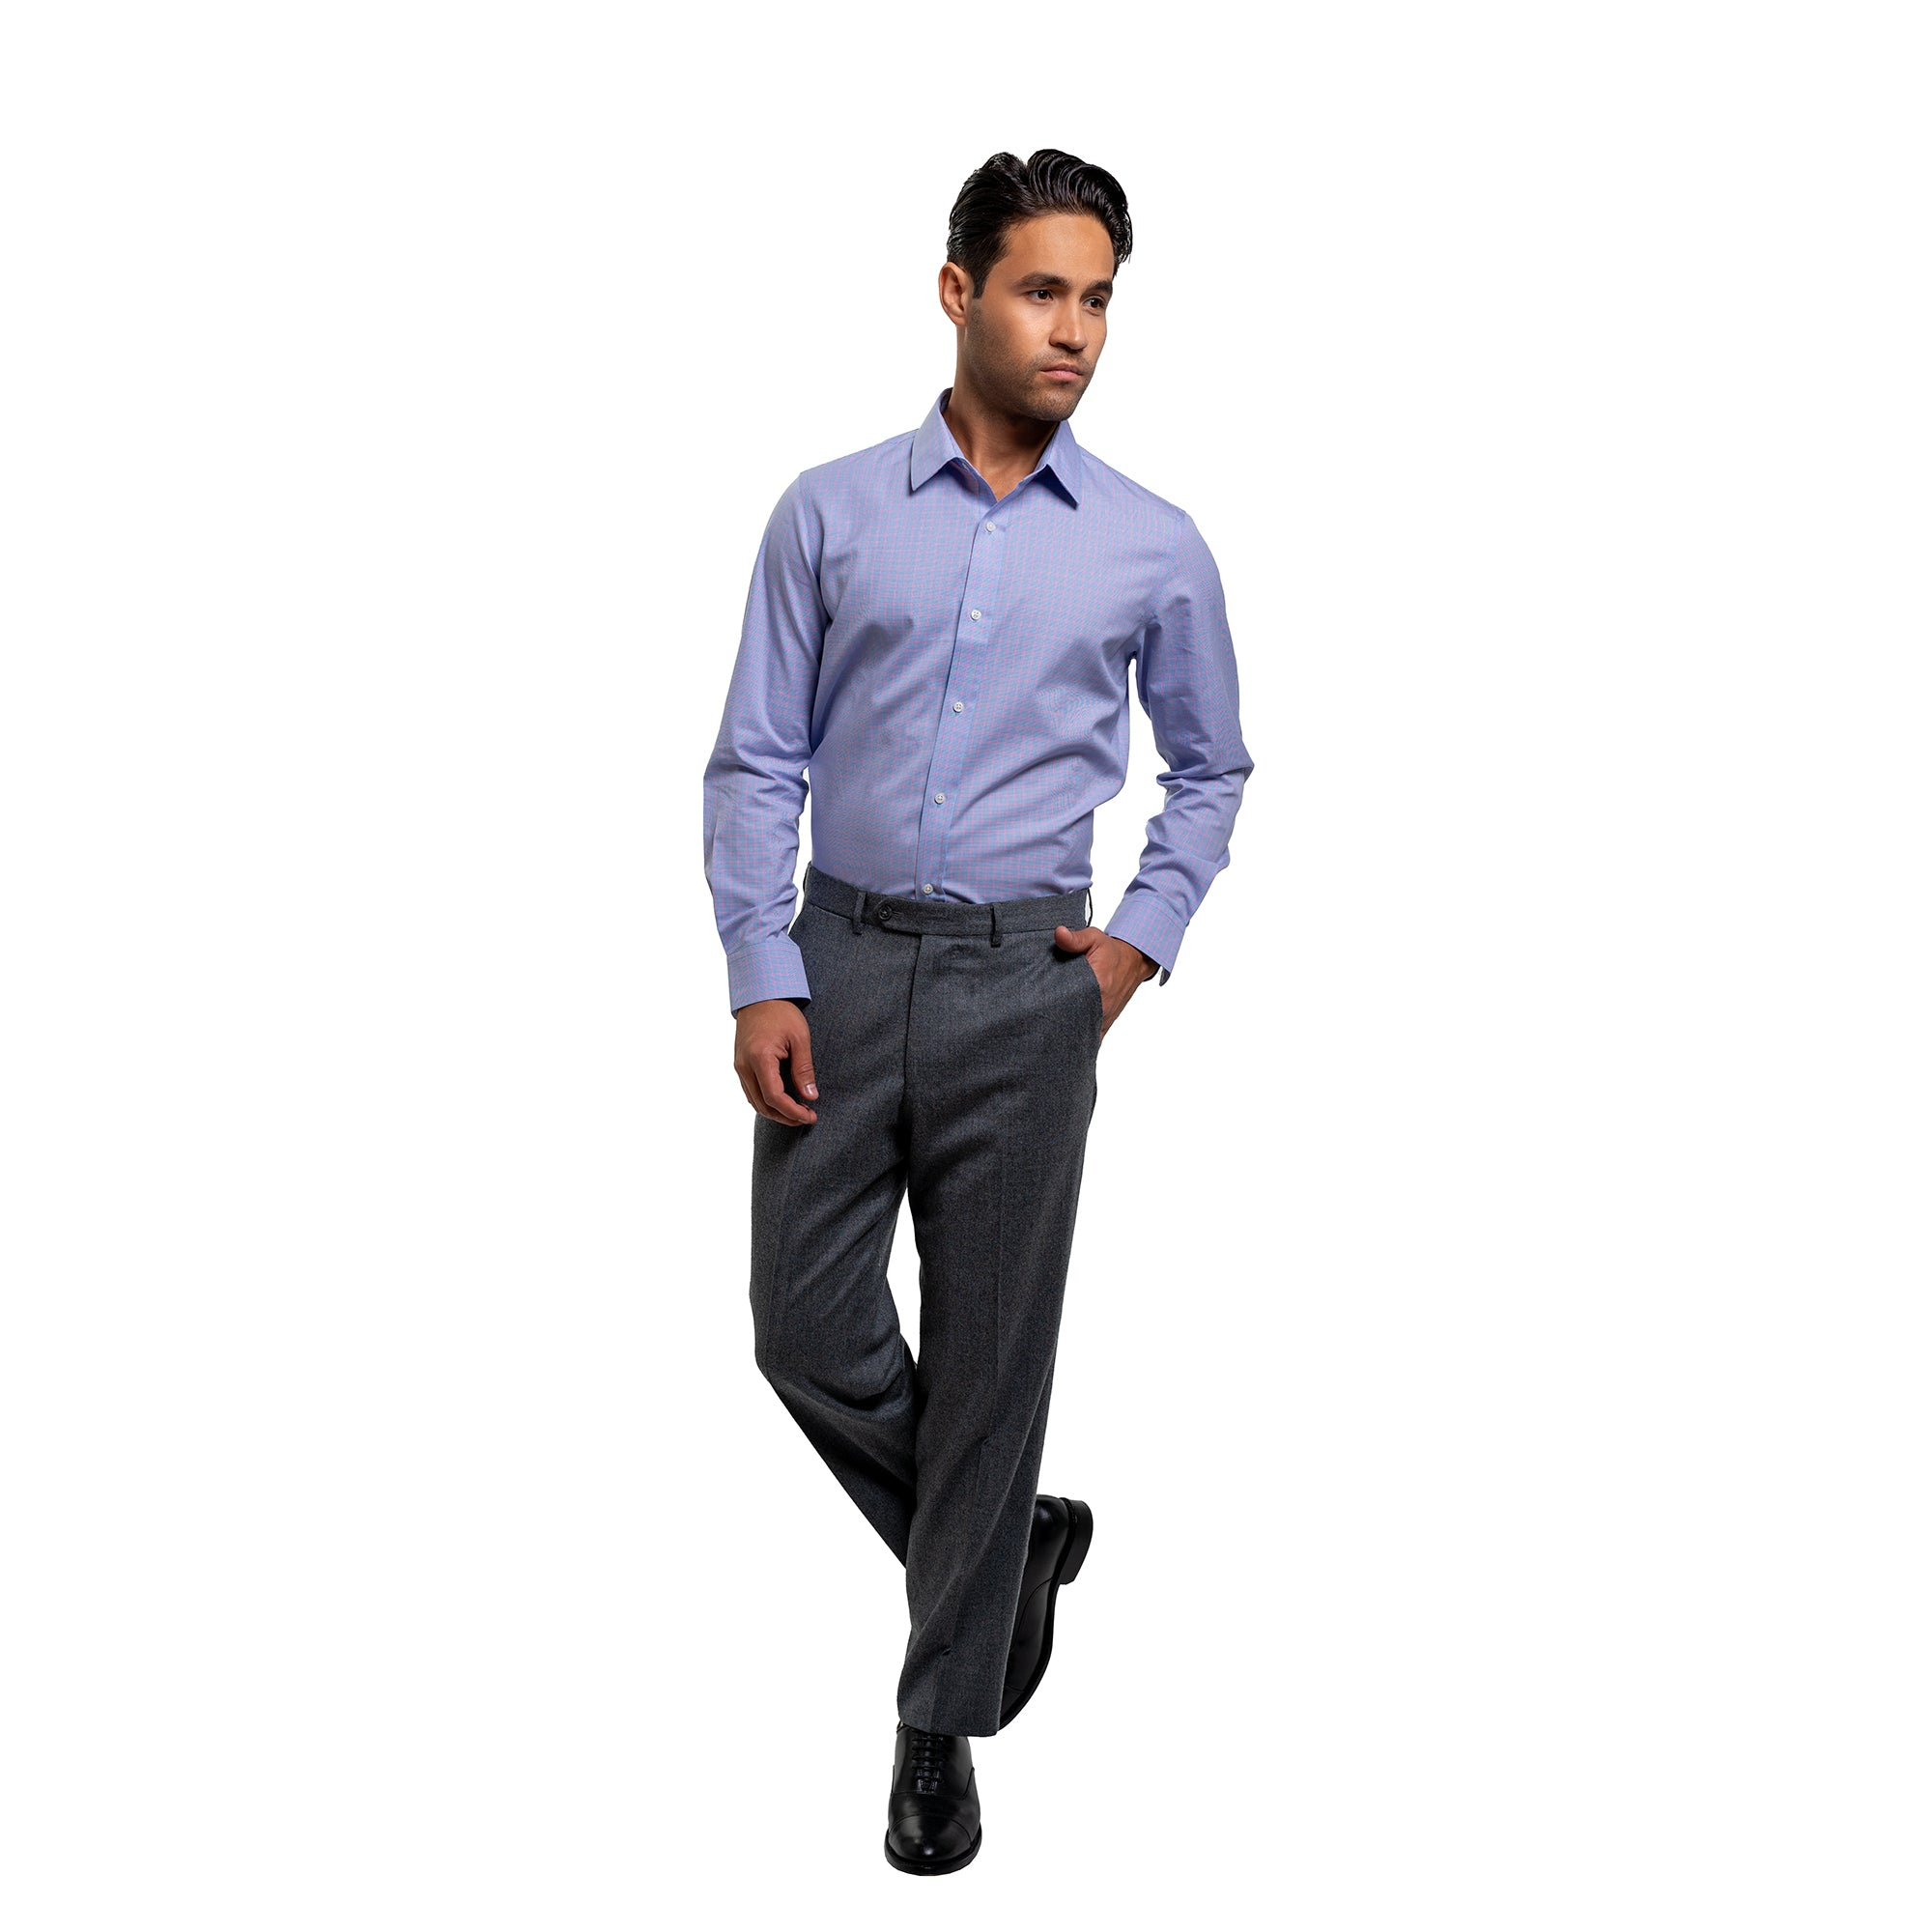 Easy Care Dress Shirt Standard Fit - Blue Pink Tattersall